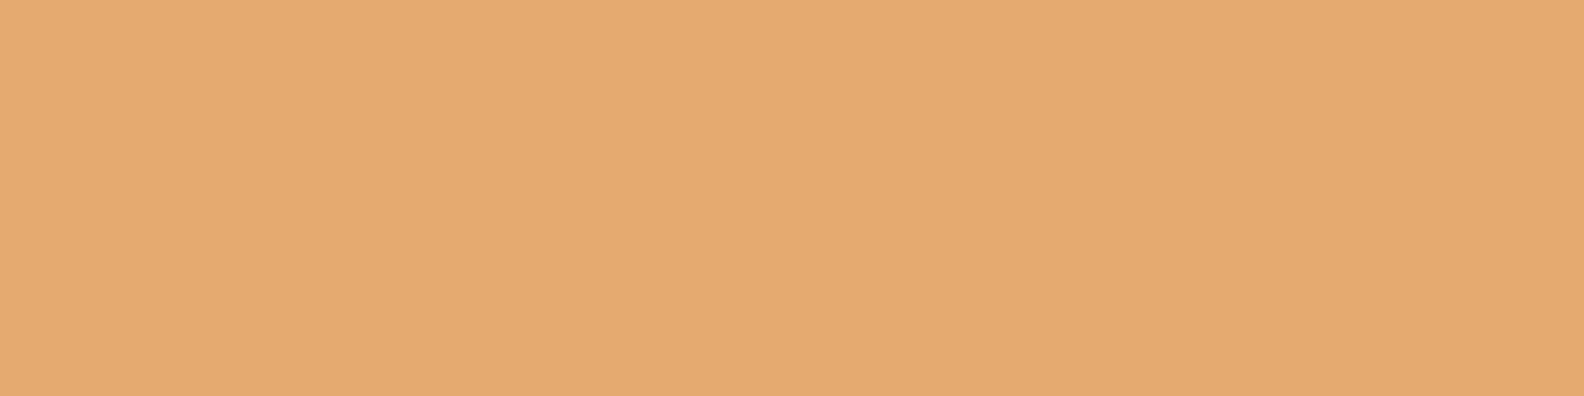 1584x396 Fawn Solid Color Background